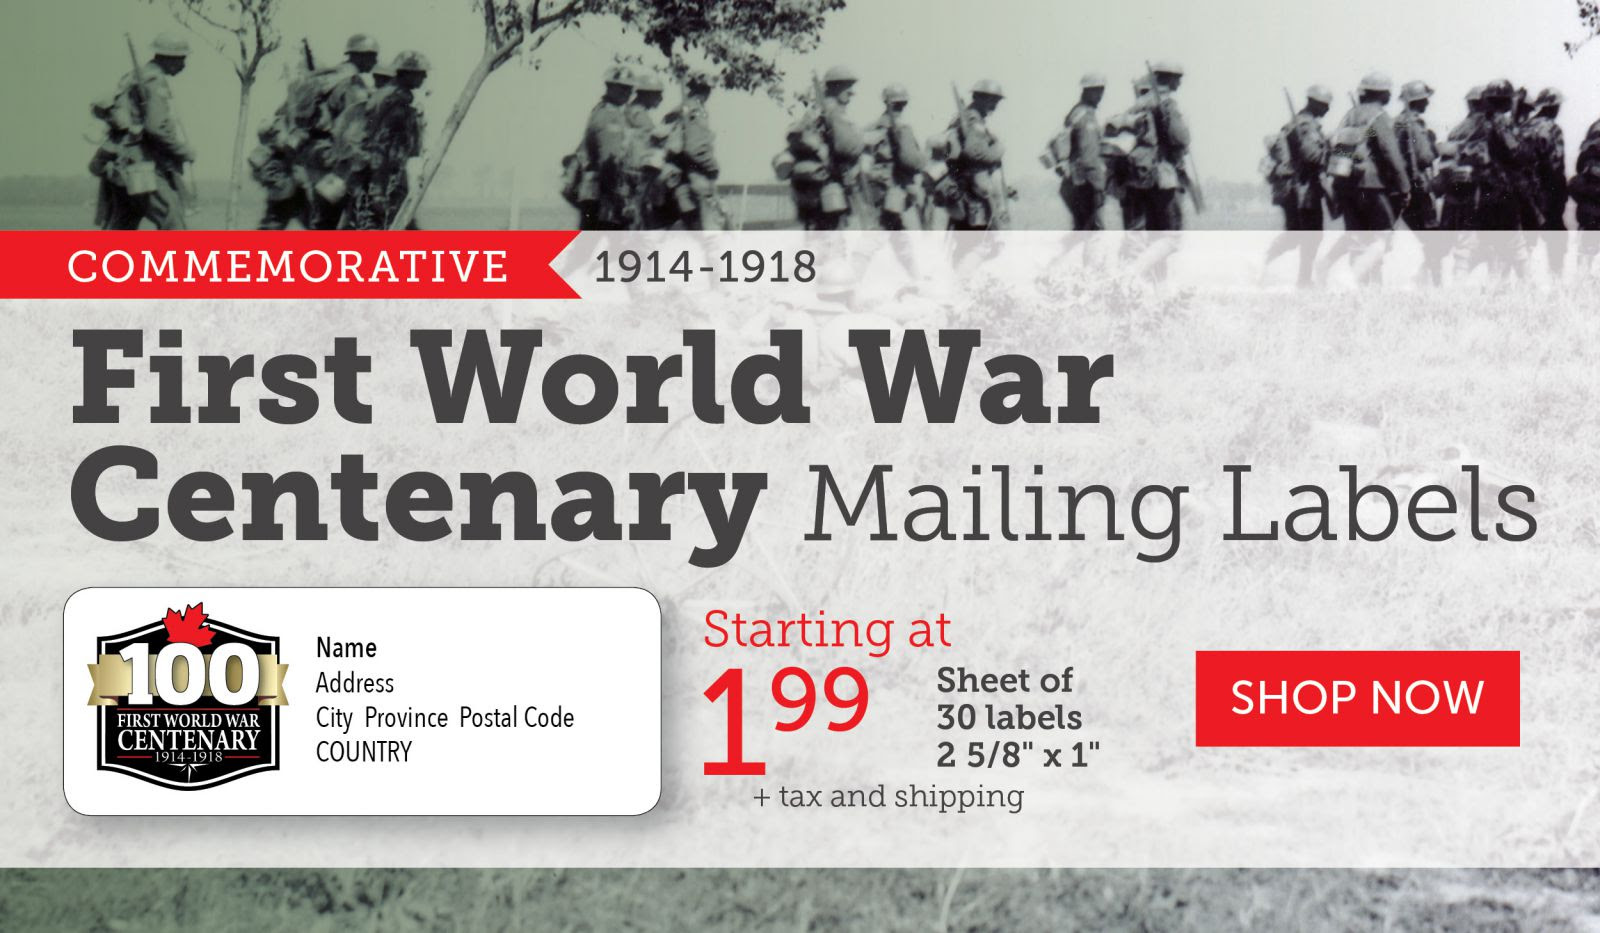 First World War Centenary Mailing Labels